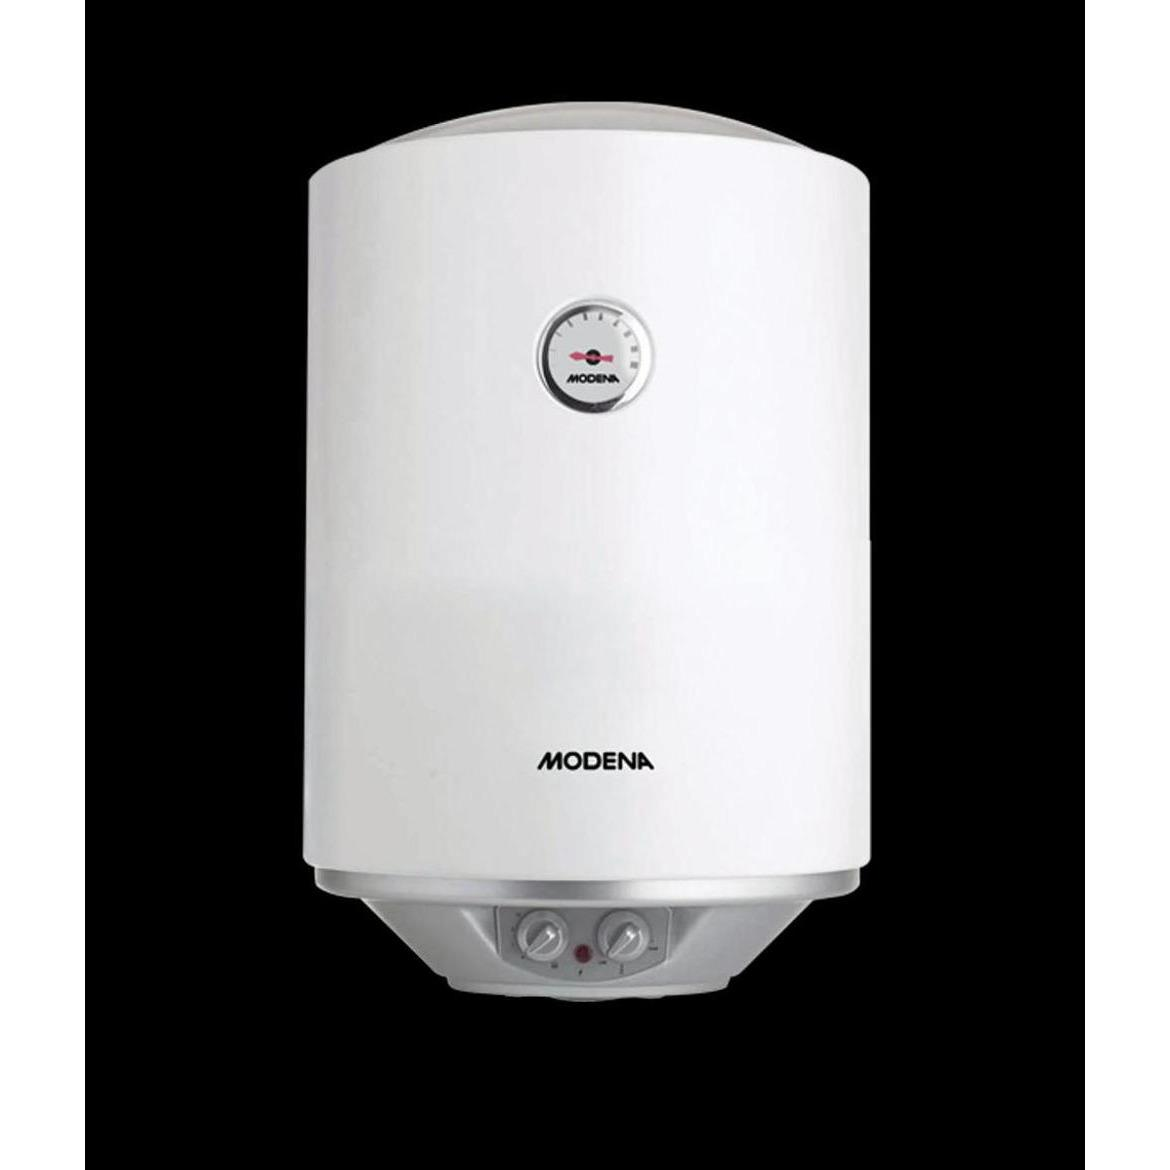 Super Promo Electric Water Heater Modena Es-100V .100 Liter. Murah